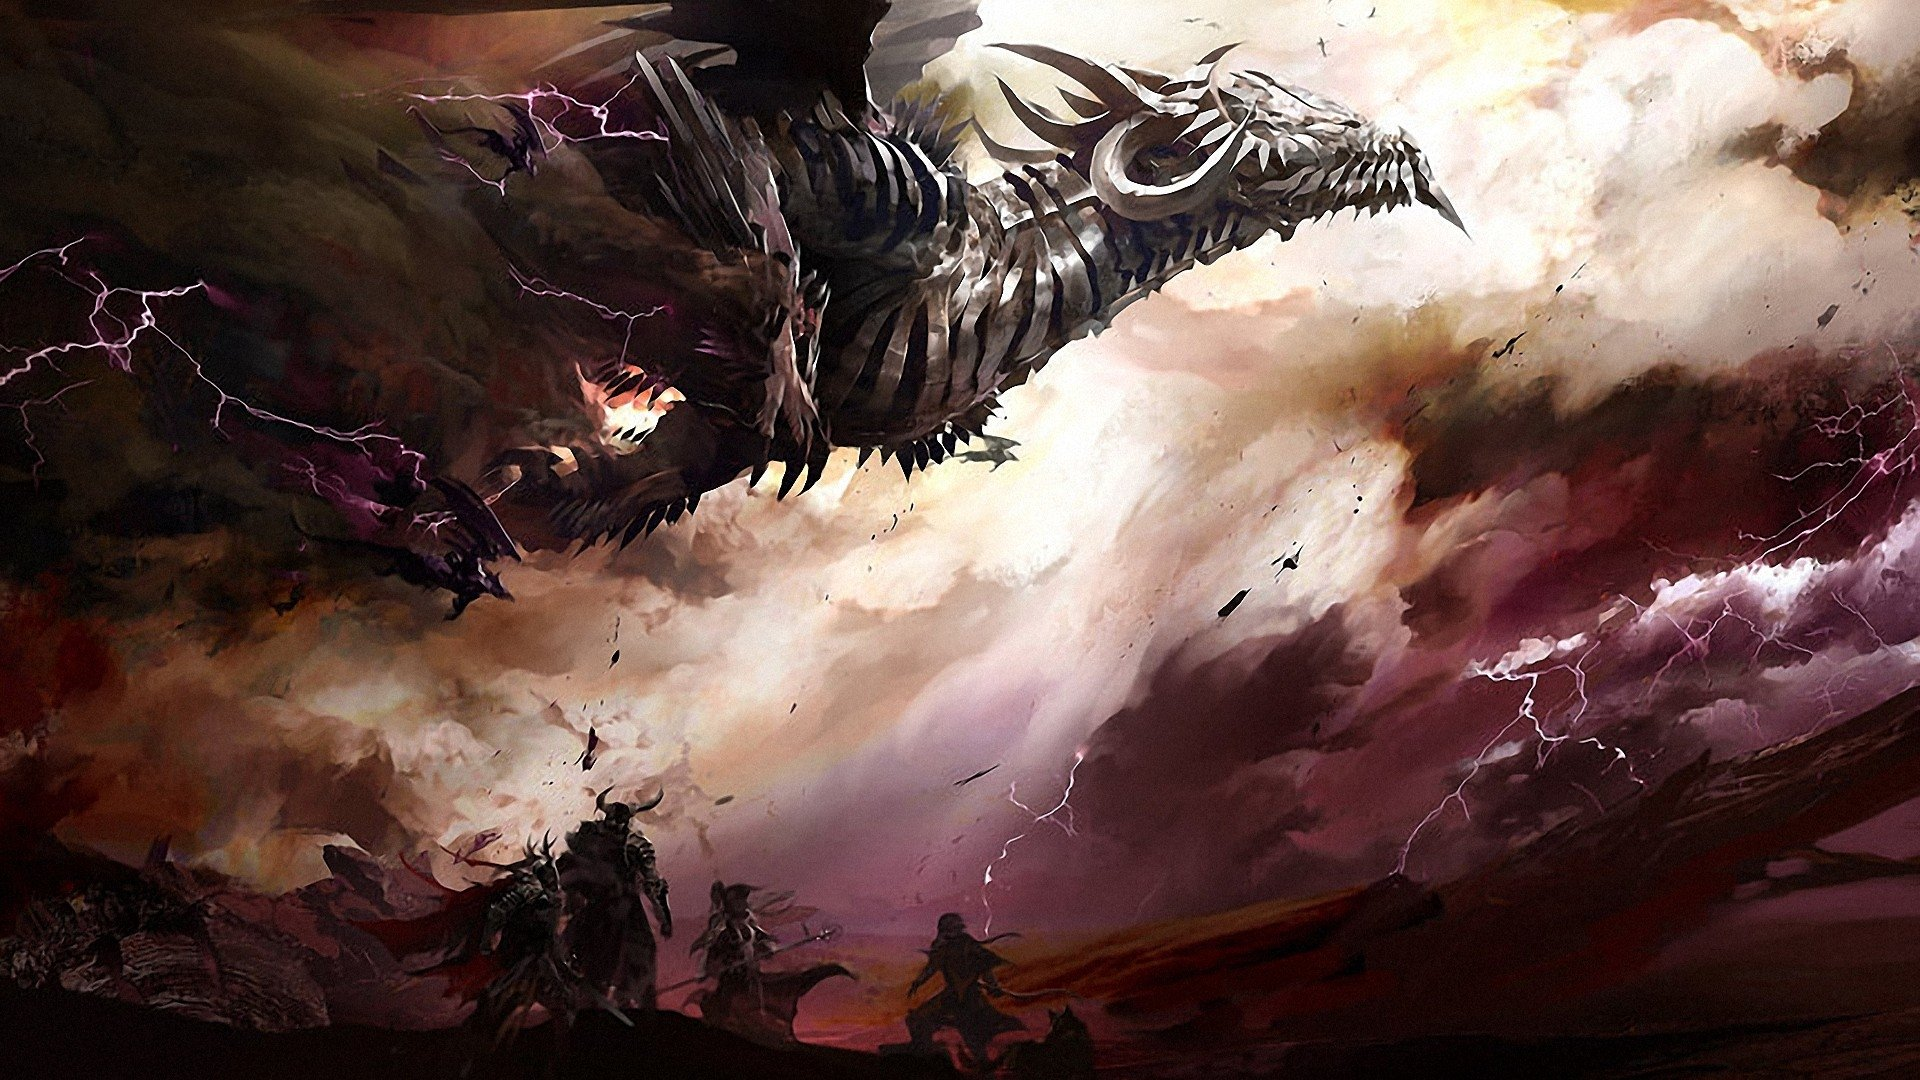 Guild Wars 2 Hd Wallpaper Background Image 1920x1080 Id